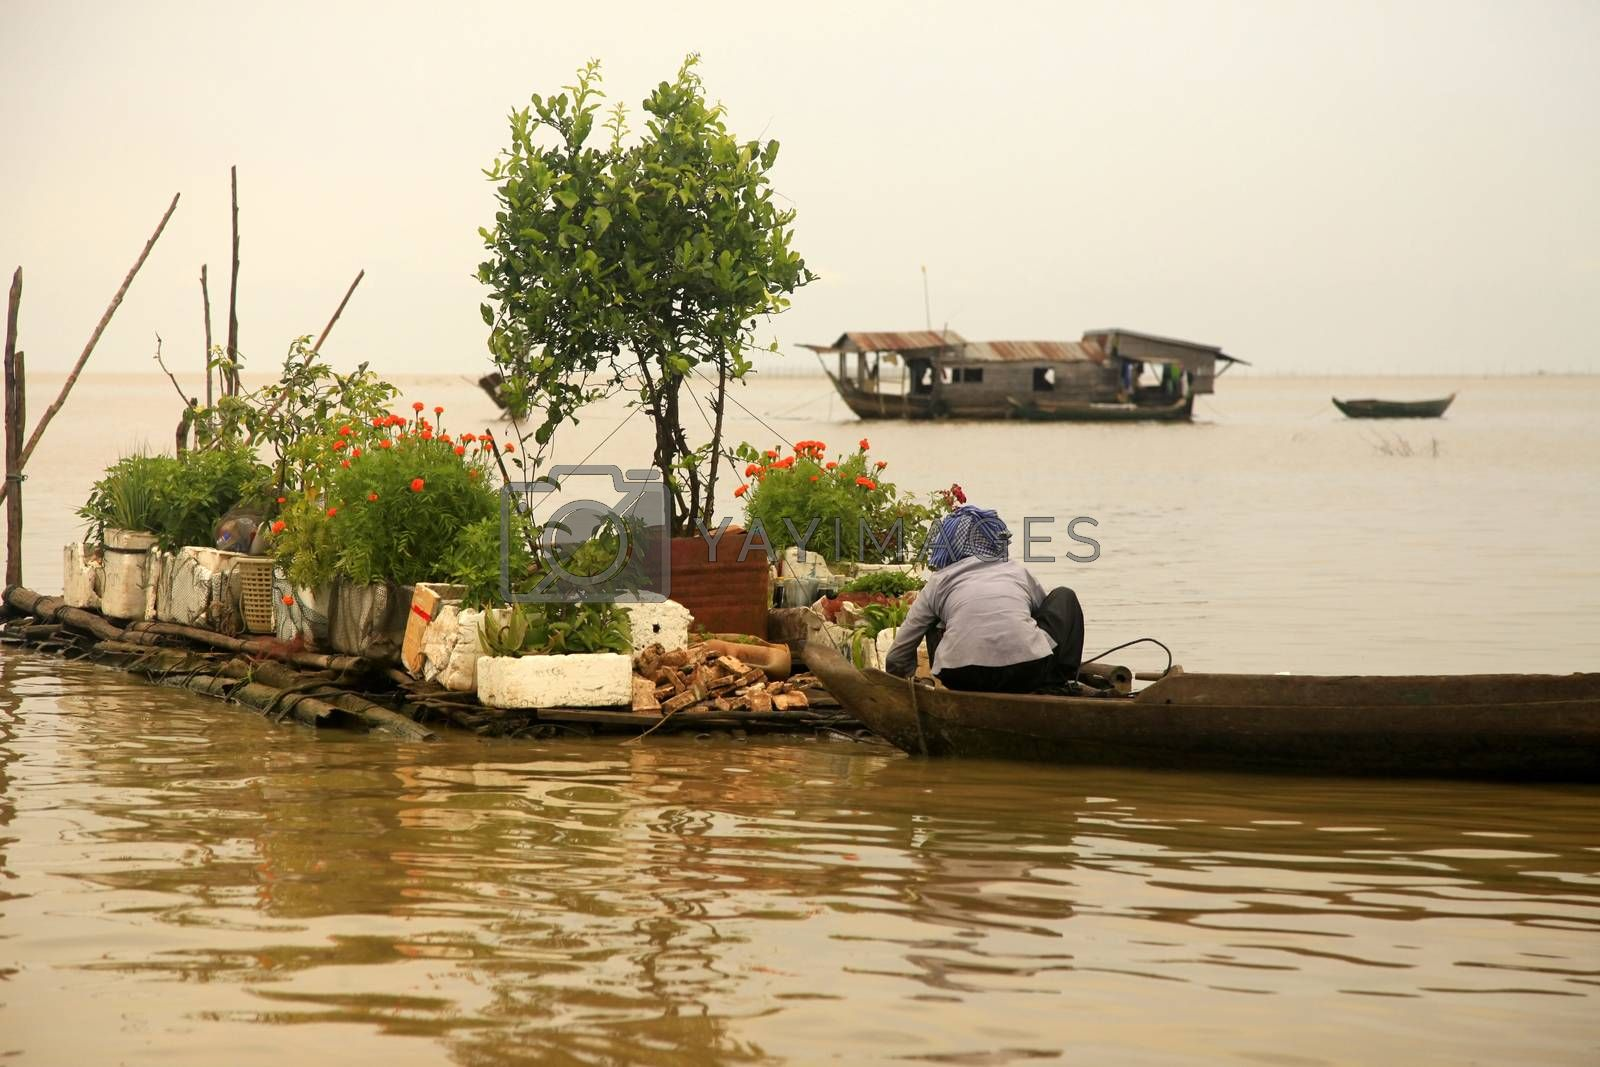 SIEM REAP, CAMBODIA - APRIL 06, 2014: An unidentified woman on a floating village on Tonle Sap lake in Siem Reap, Cambodia on April 06, 2014.